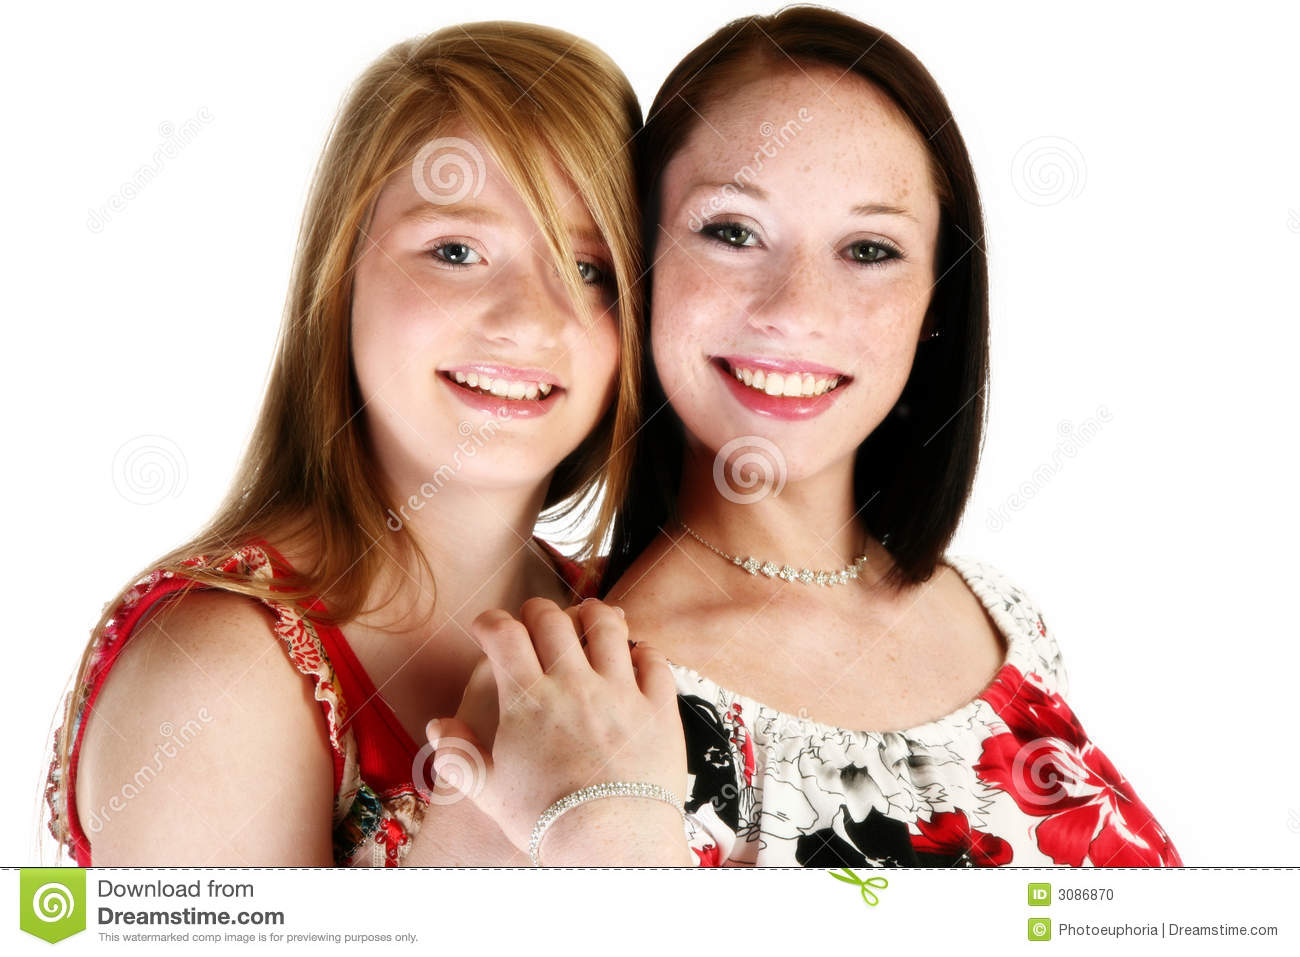 Beautiful 17 year old and 15 year old teen sisters over white.